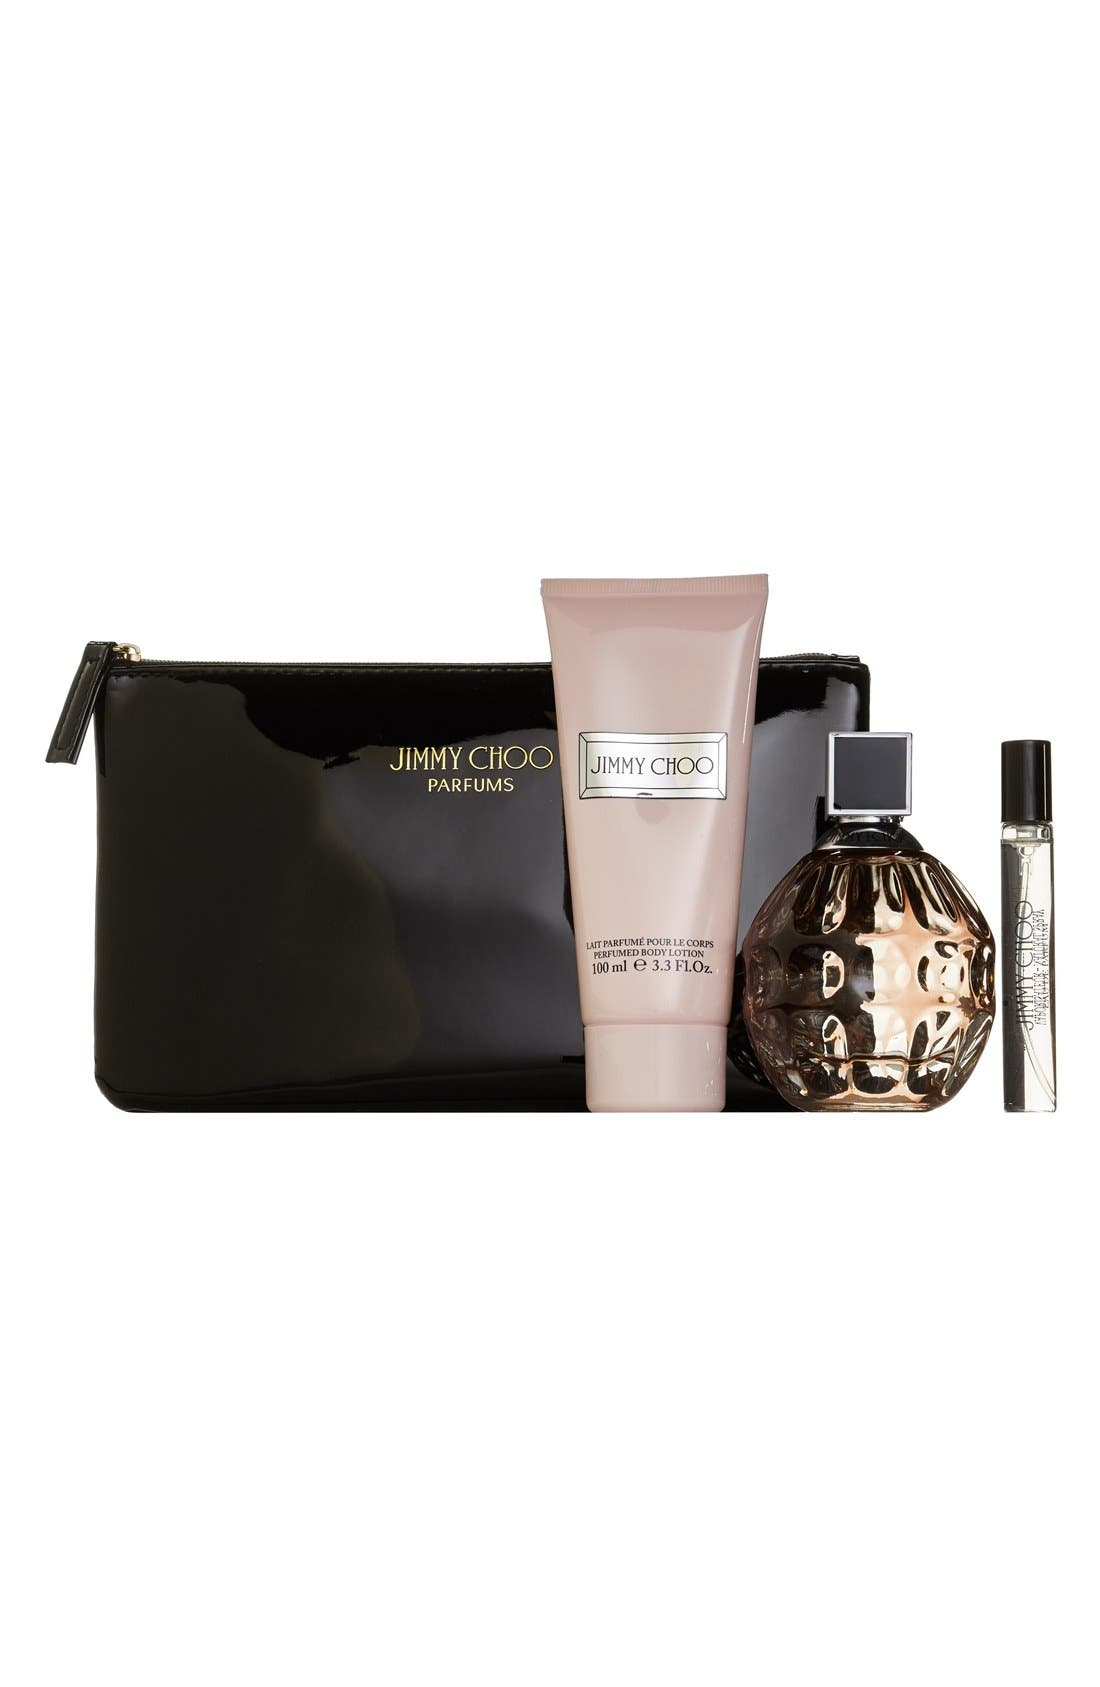 Jimmy Choo Eau de Parfum Set ($153 Value)